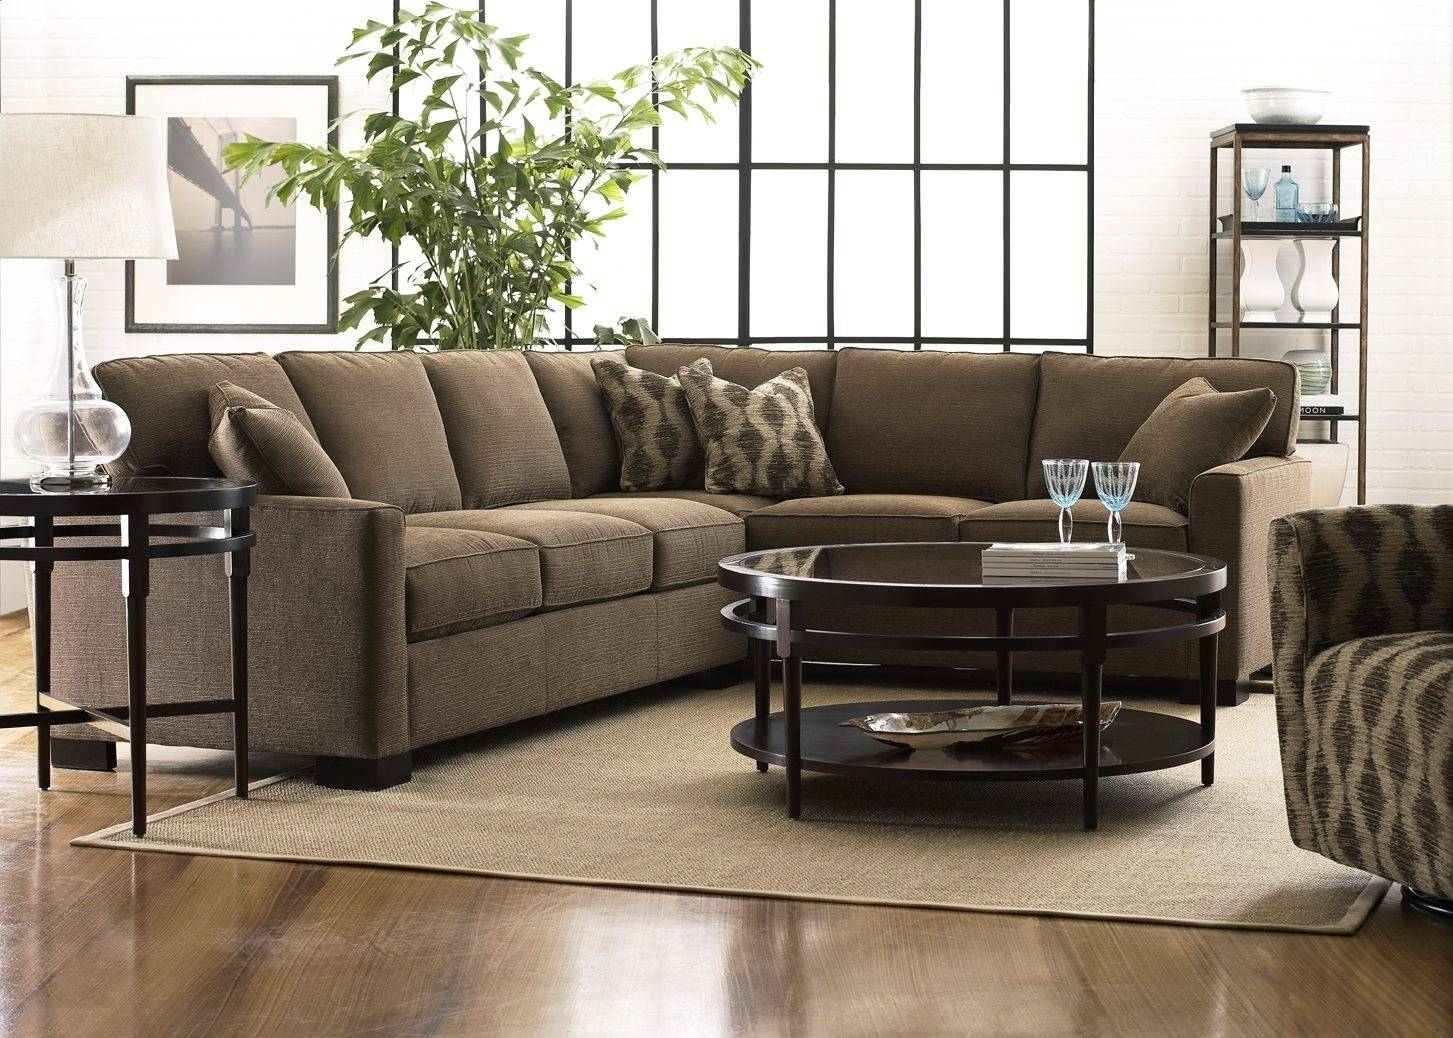 Albany Industries Sectional Sofa | Interior Design Regarding Albany Industries Sectional Sofa (View 5 of 30)